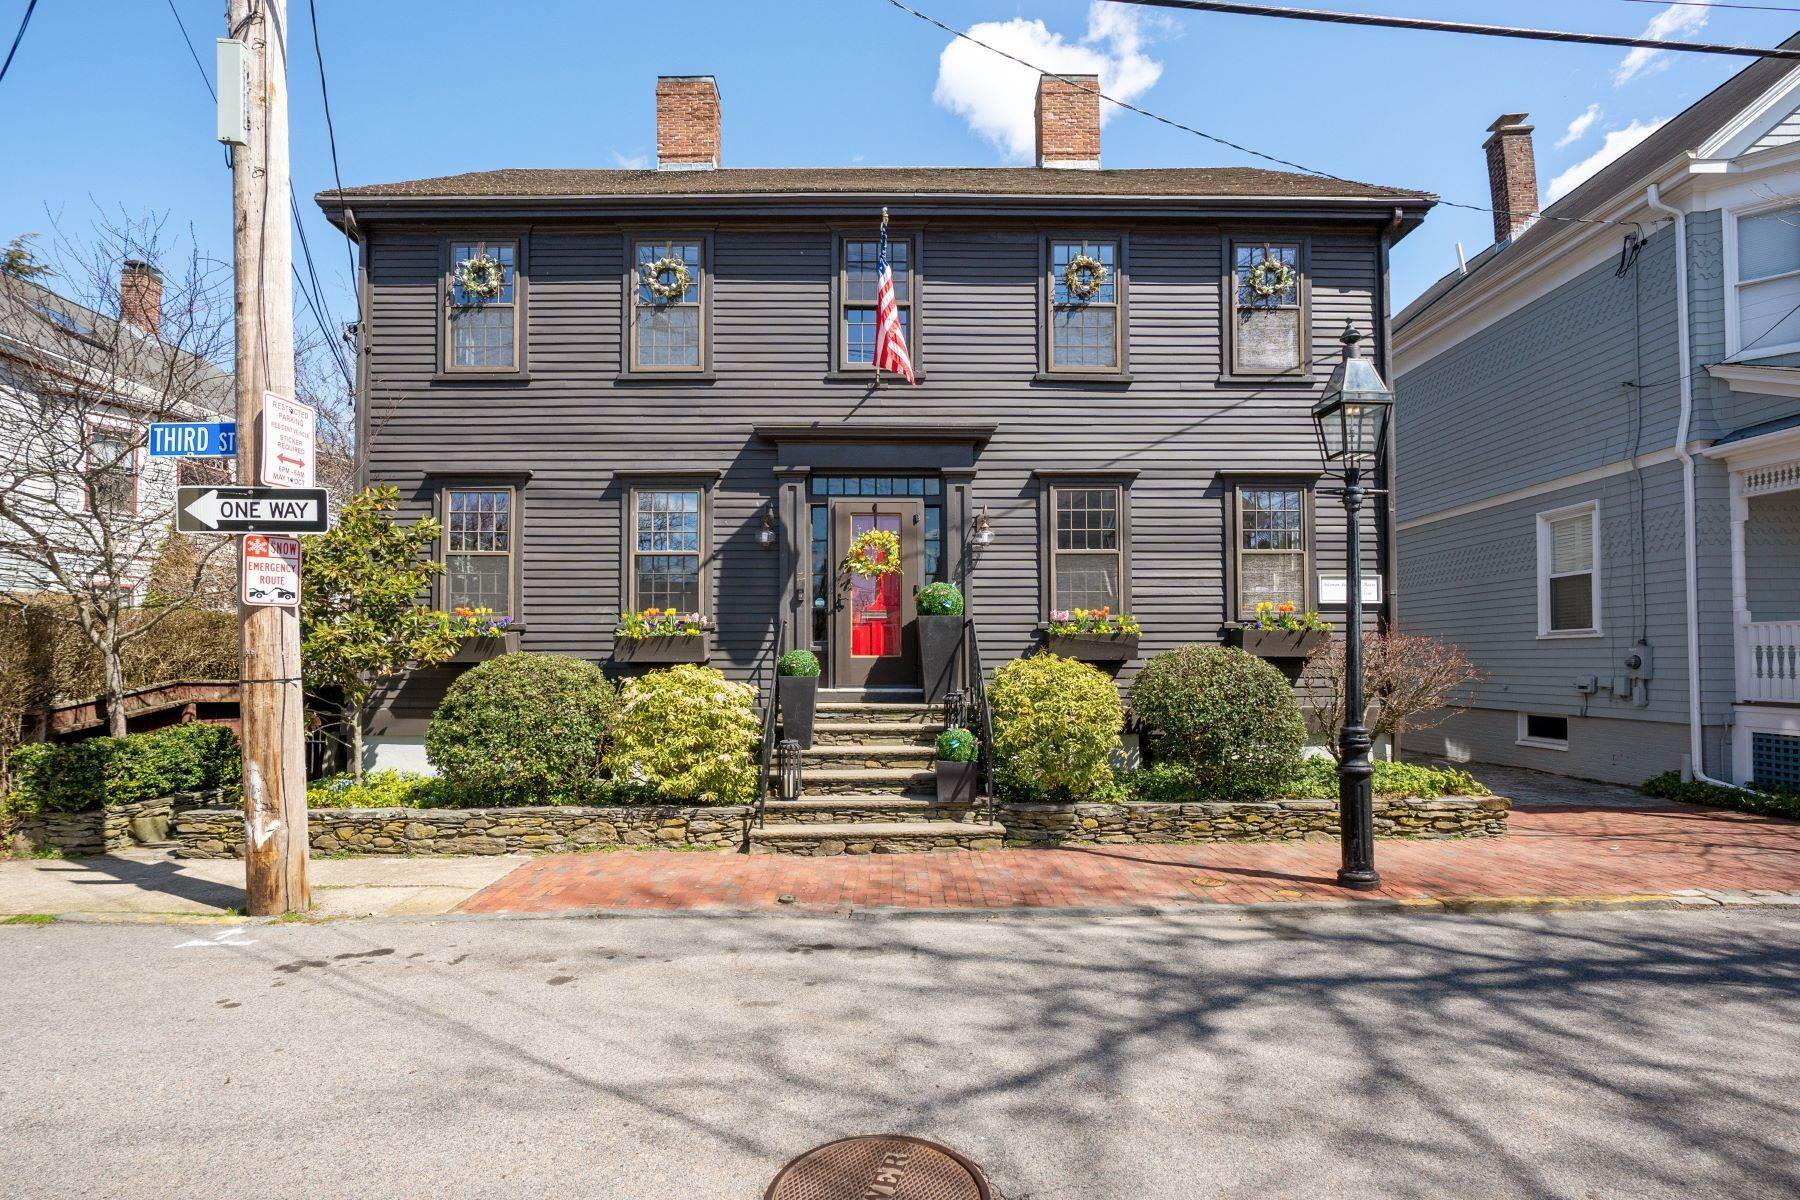 Single Family Homes for Sale at Solomon Southwick House 77 Third Street Newport, Rhode Island 02840 United States